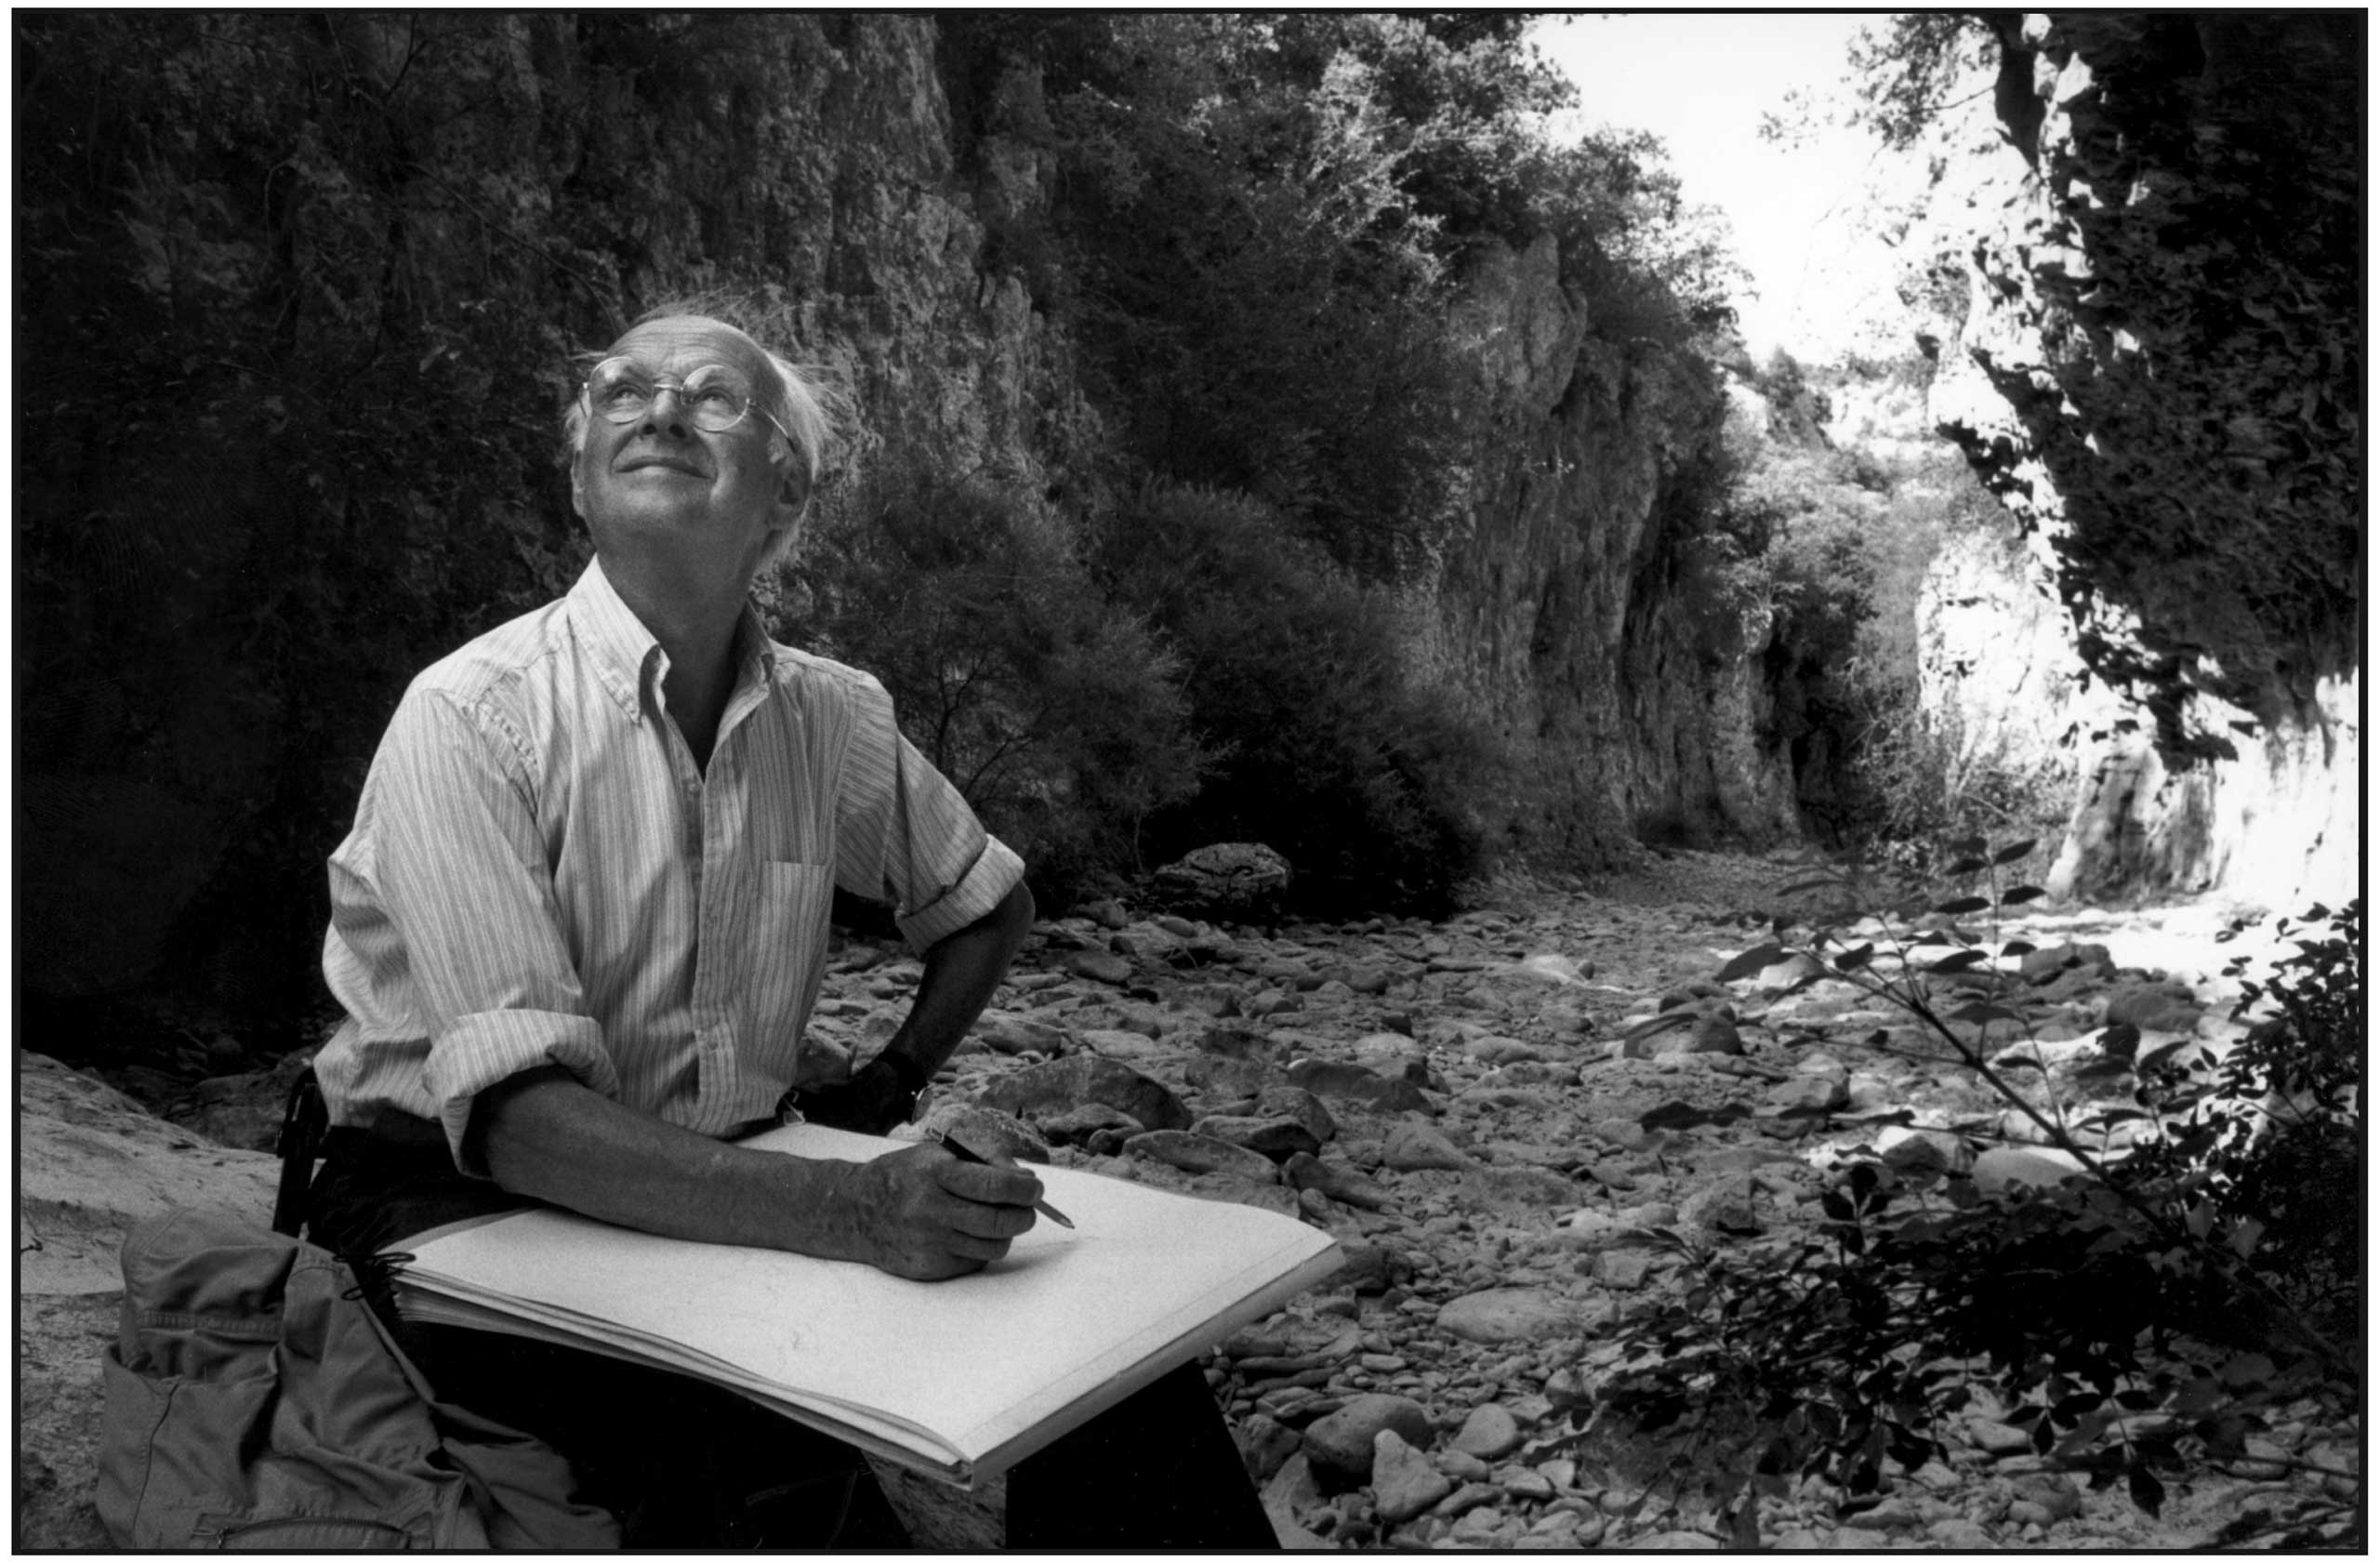 Henri Cartier-Bresson drawing in the canion of Oppedette in Alpe de Haute Provence, France, 1976.